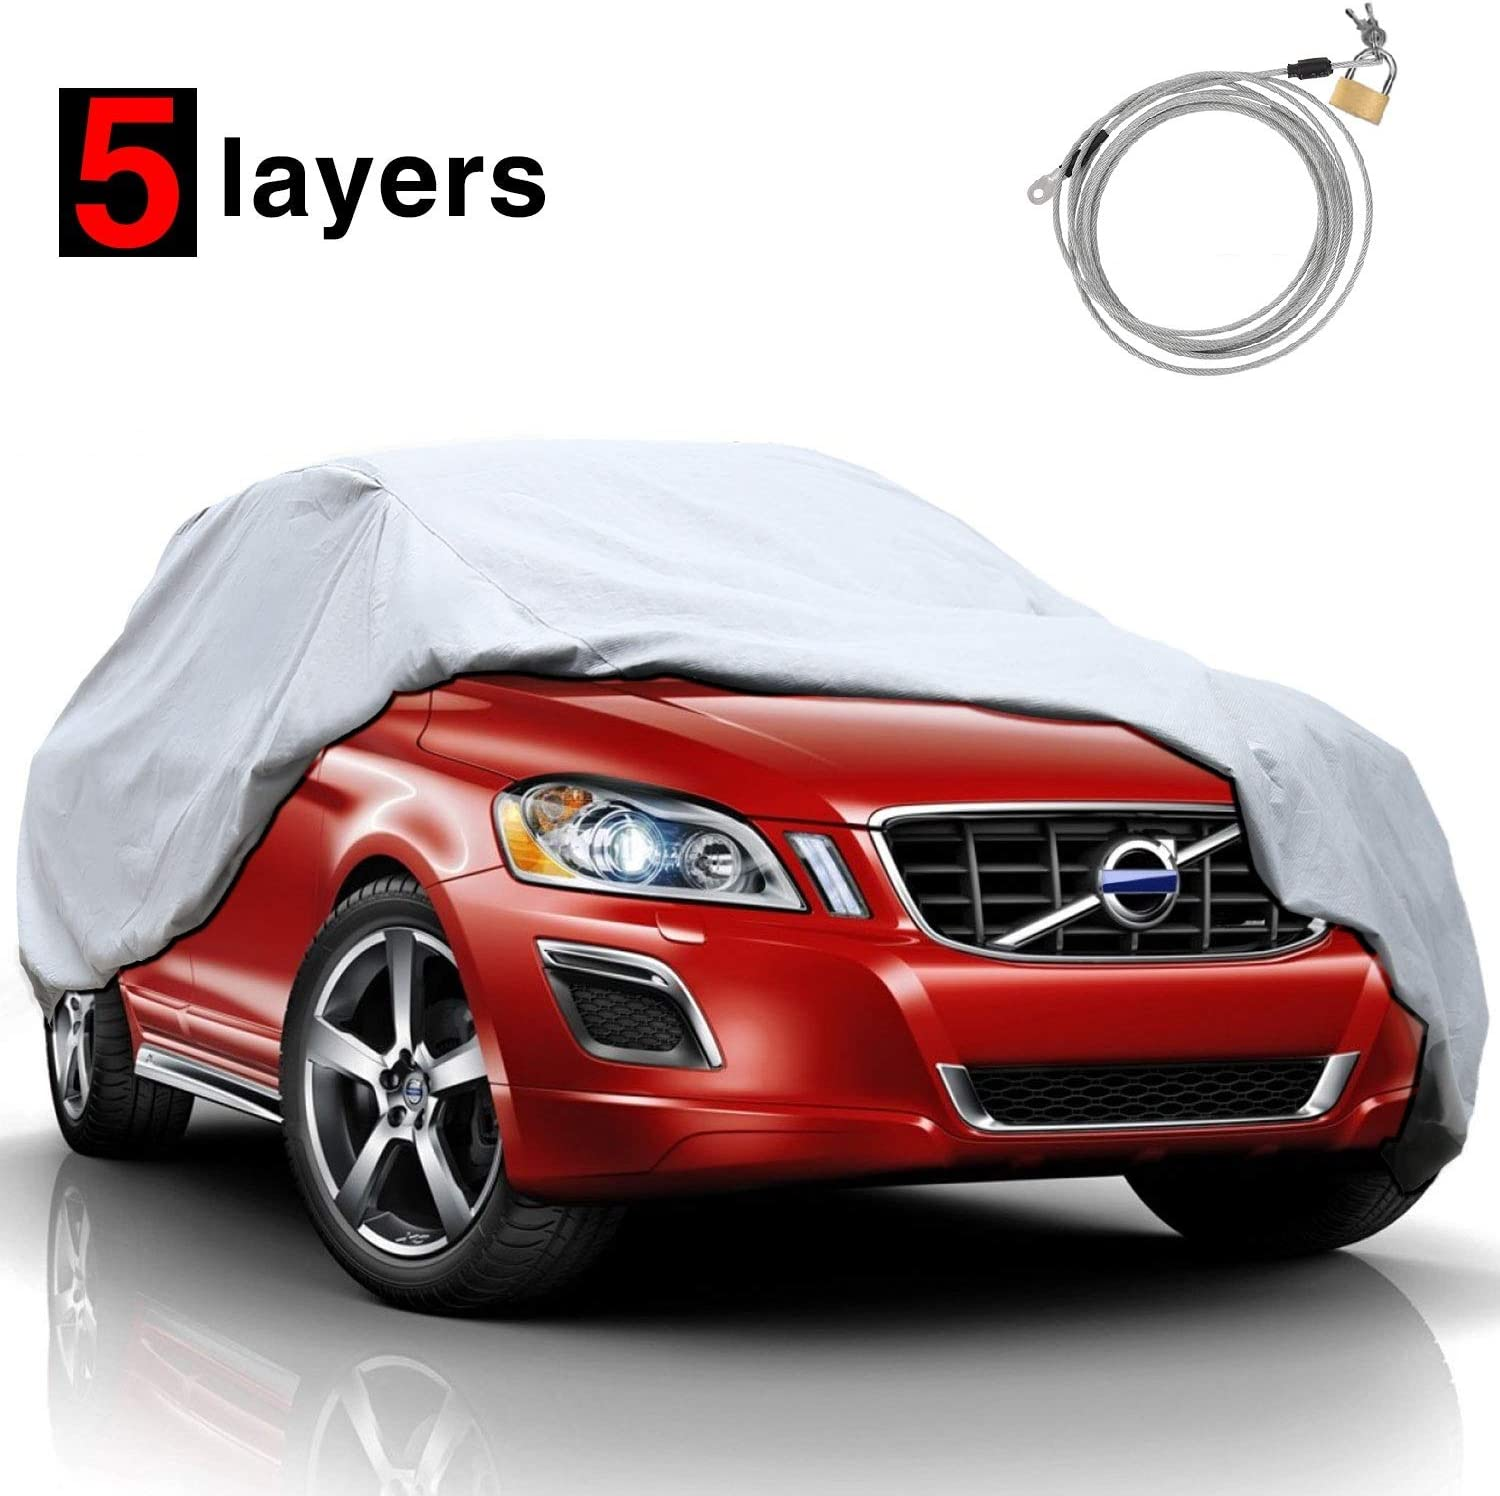 4. Kakit's SUV Car Cover Durable multi-layer protection for taller vehicles